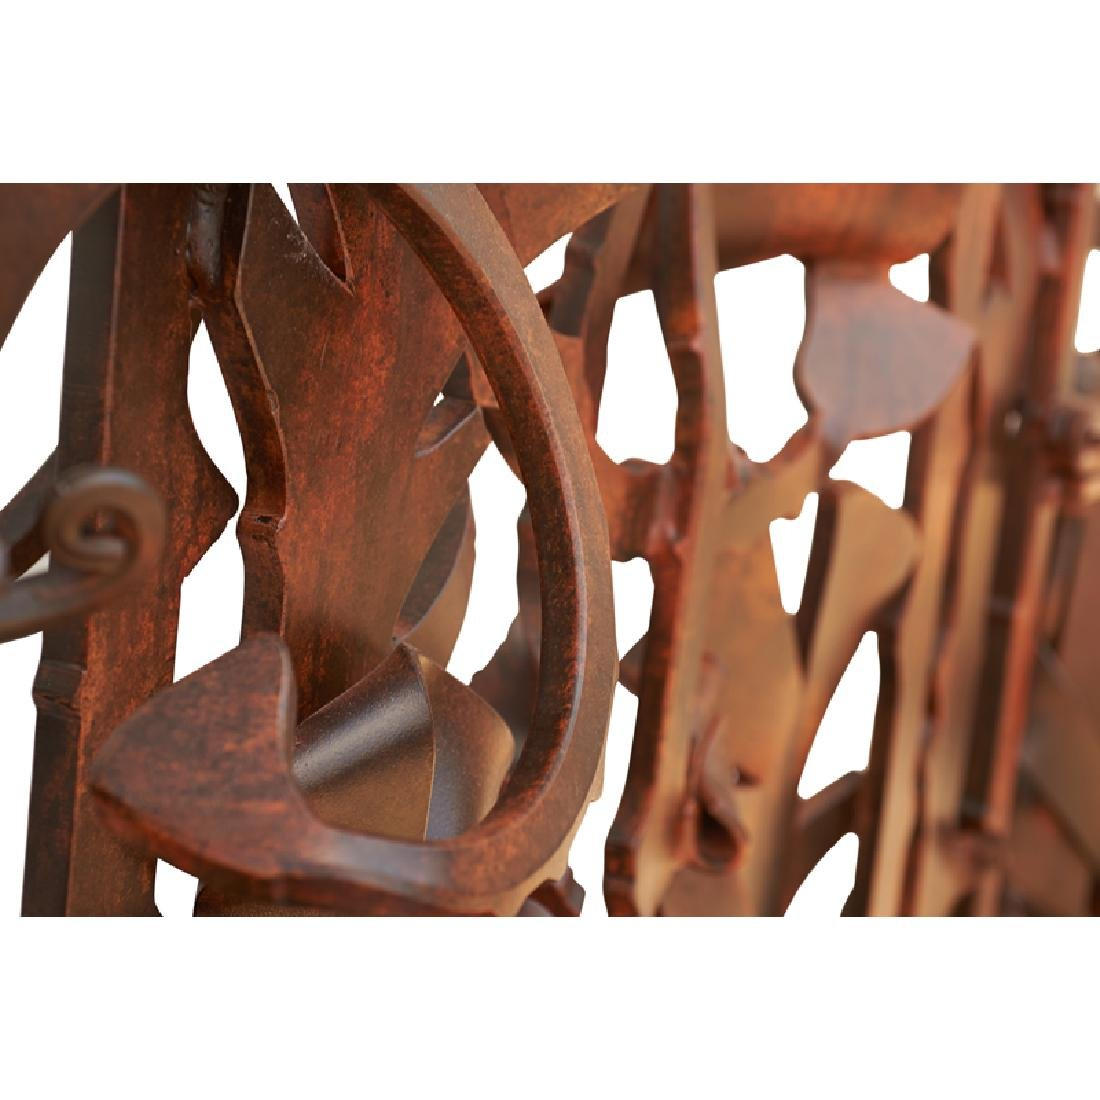 ALBERT PALEY Untitled (Garden Gate) - 6